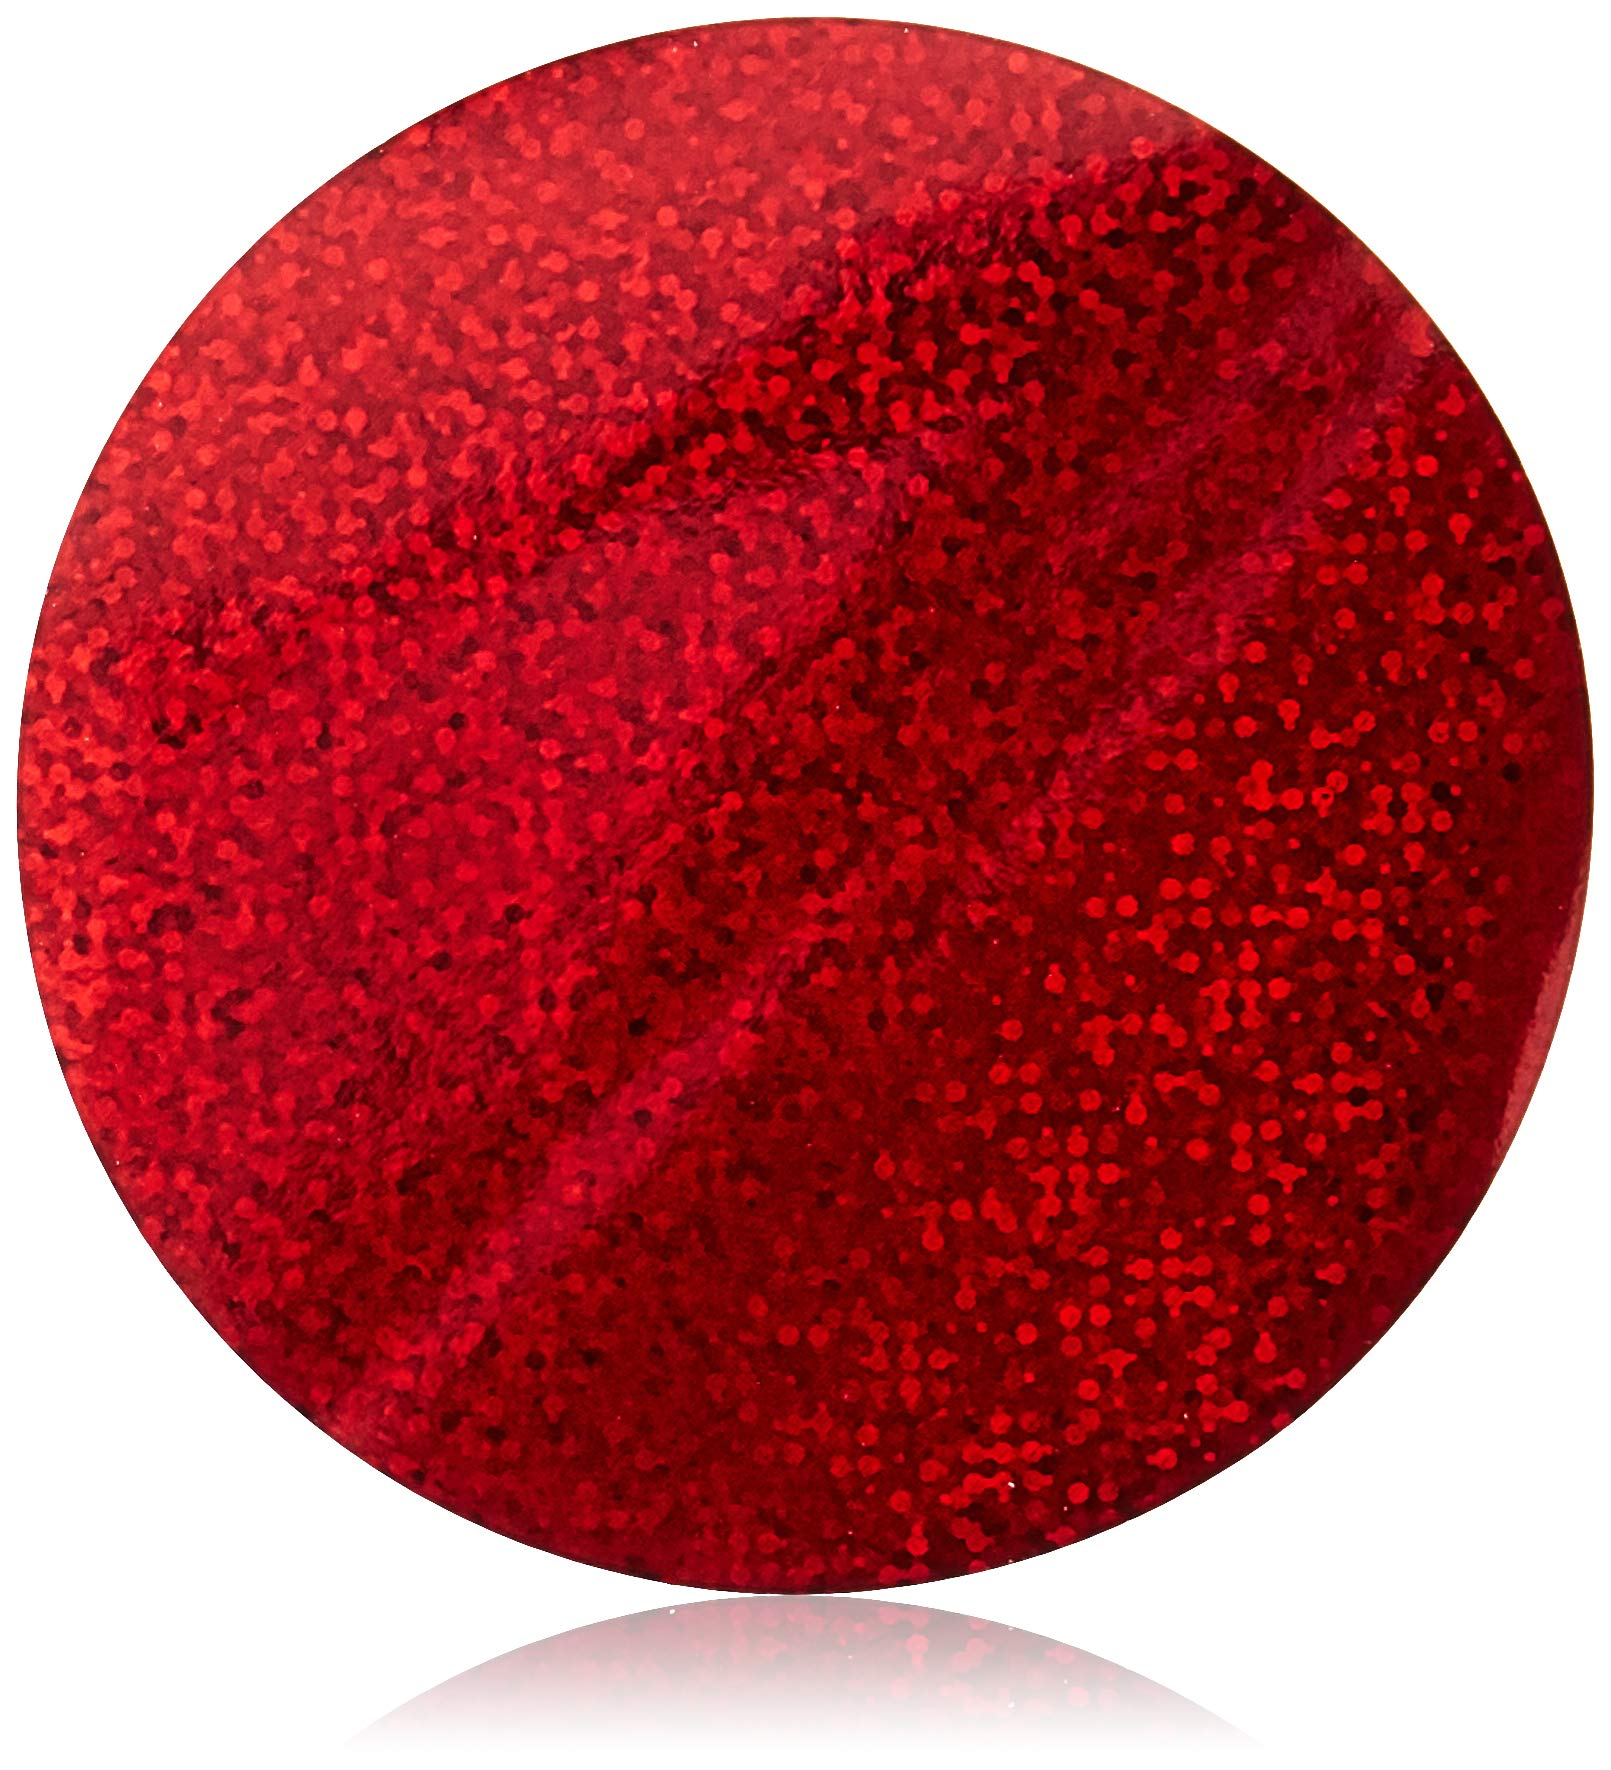 Mettoo Red Holographic Sparkle Body Foil Festival Pro, 1000 Count by Mettoo